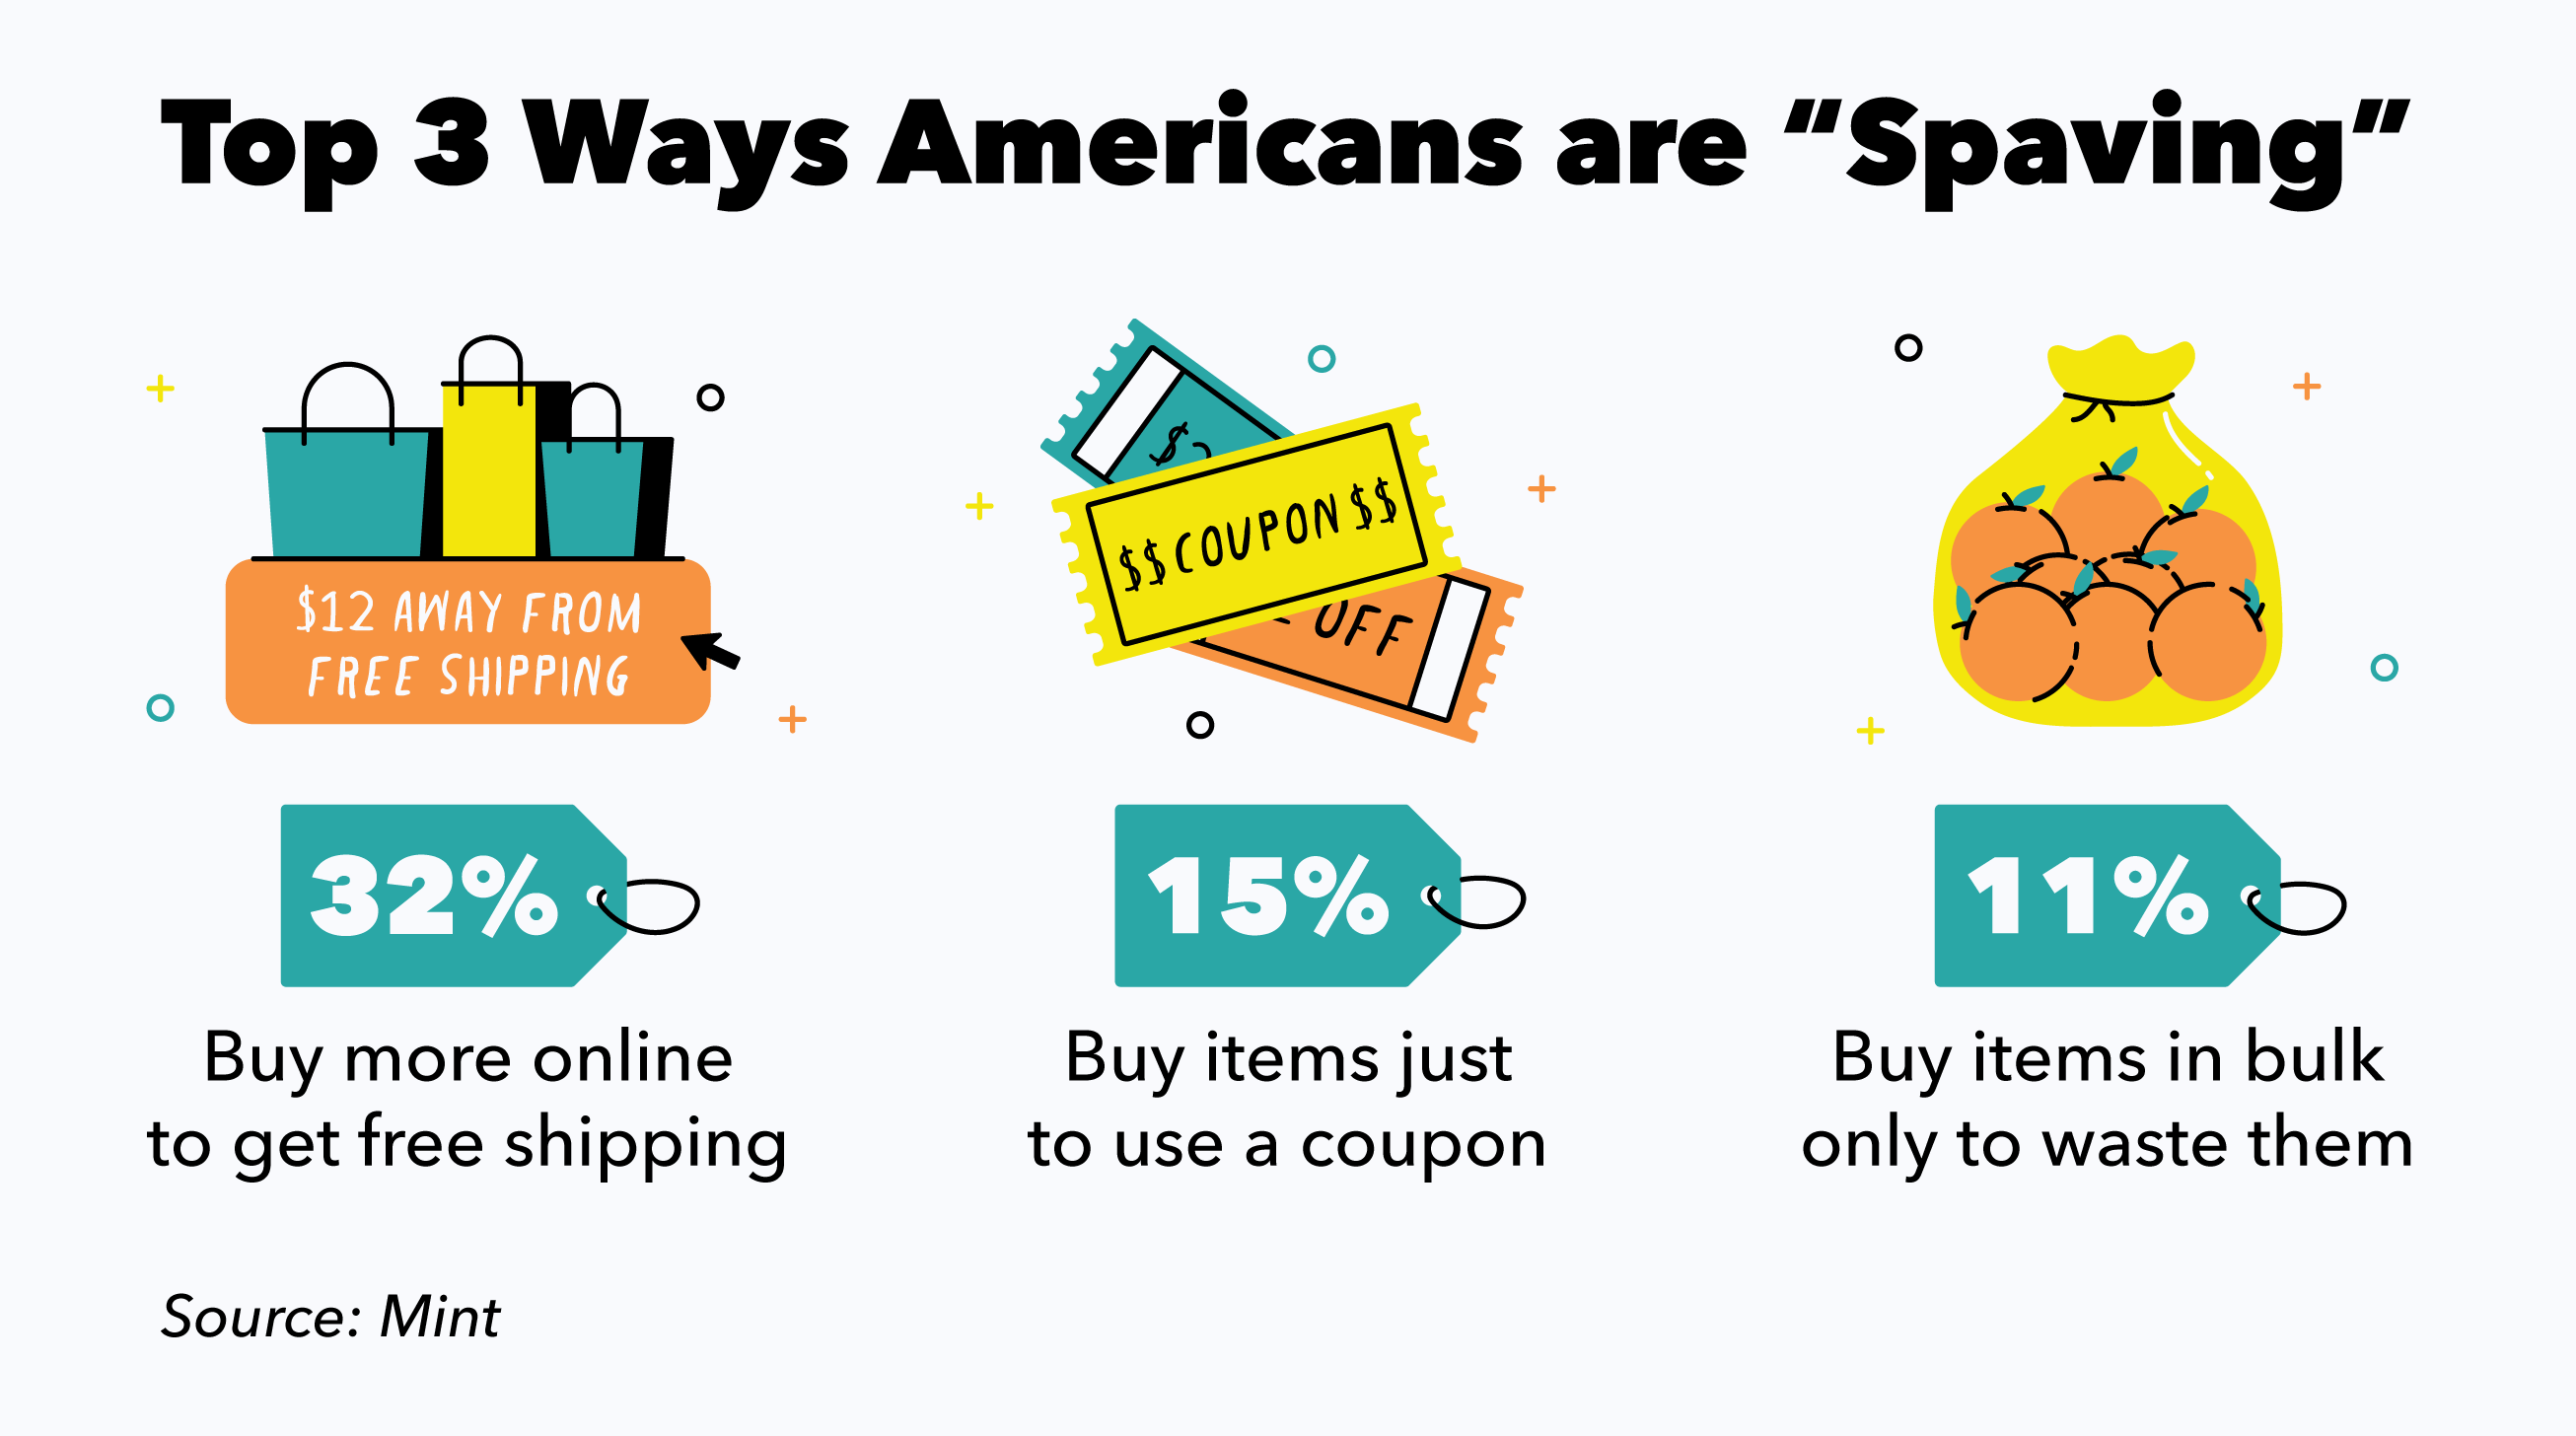 The 3 Ways Americans are Spaving